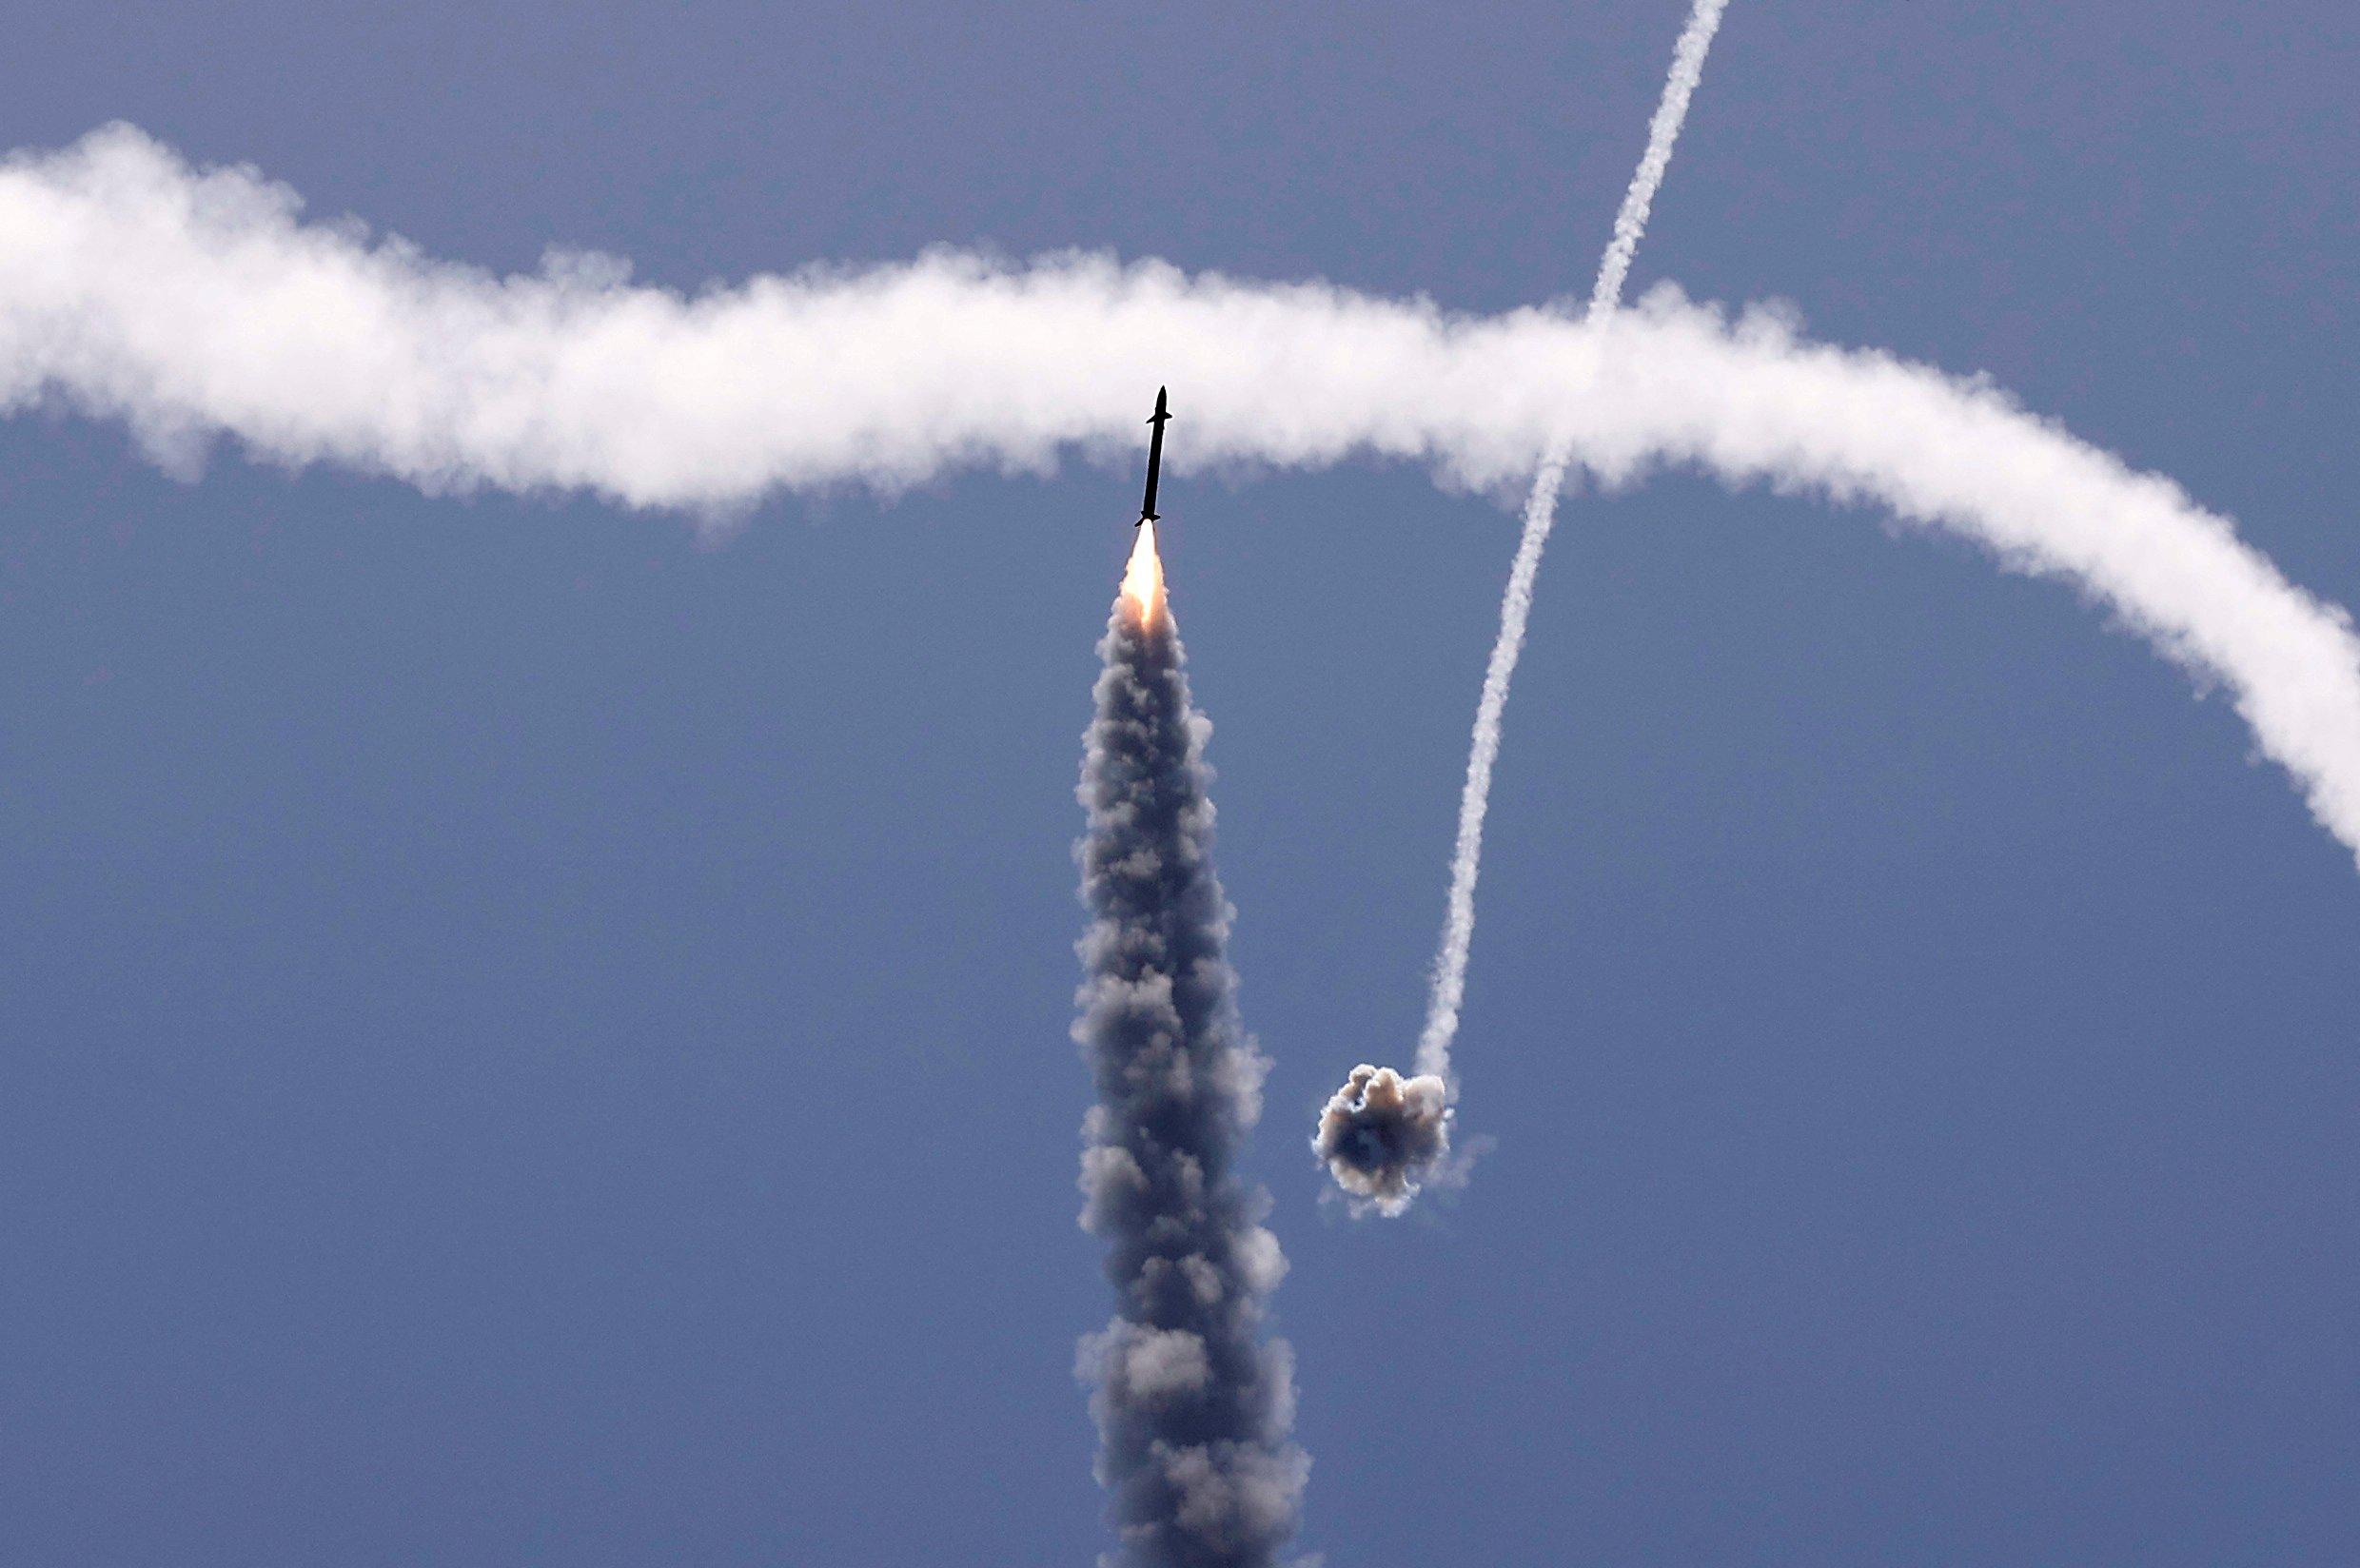 Israel's Iron Dome aerial defence system intercepts a rocket launched from the Gaza Strip, controlled by the Palestinian Hamas movement, above the southern Israeli city of Ashkelon, on May 11, 2021. (Photo by JACK GUEZ/AFP via Getty Images)